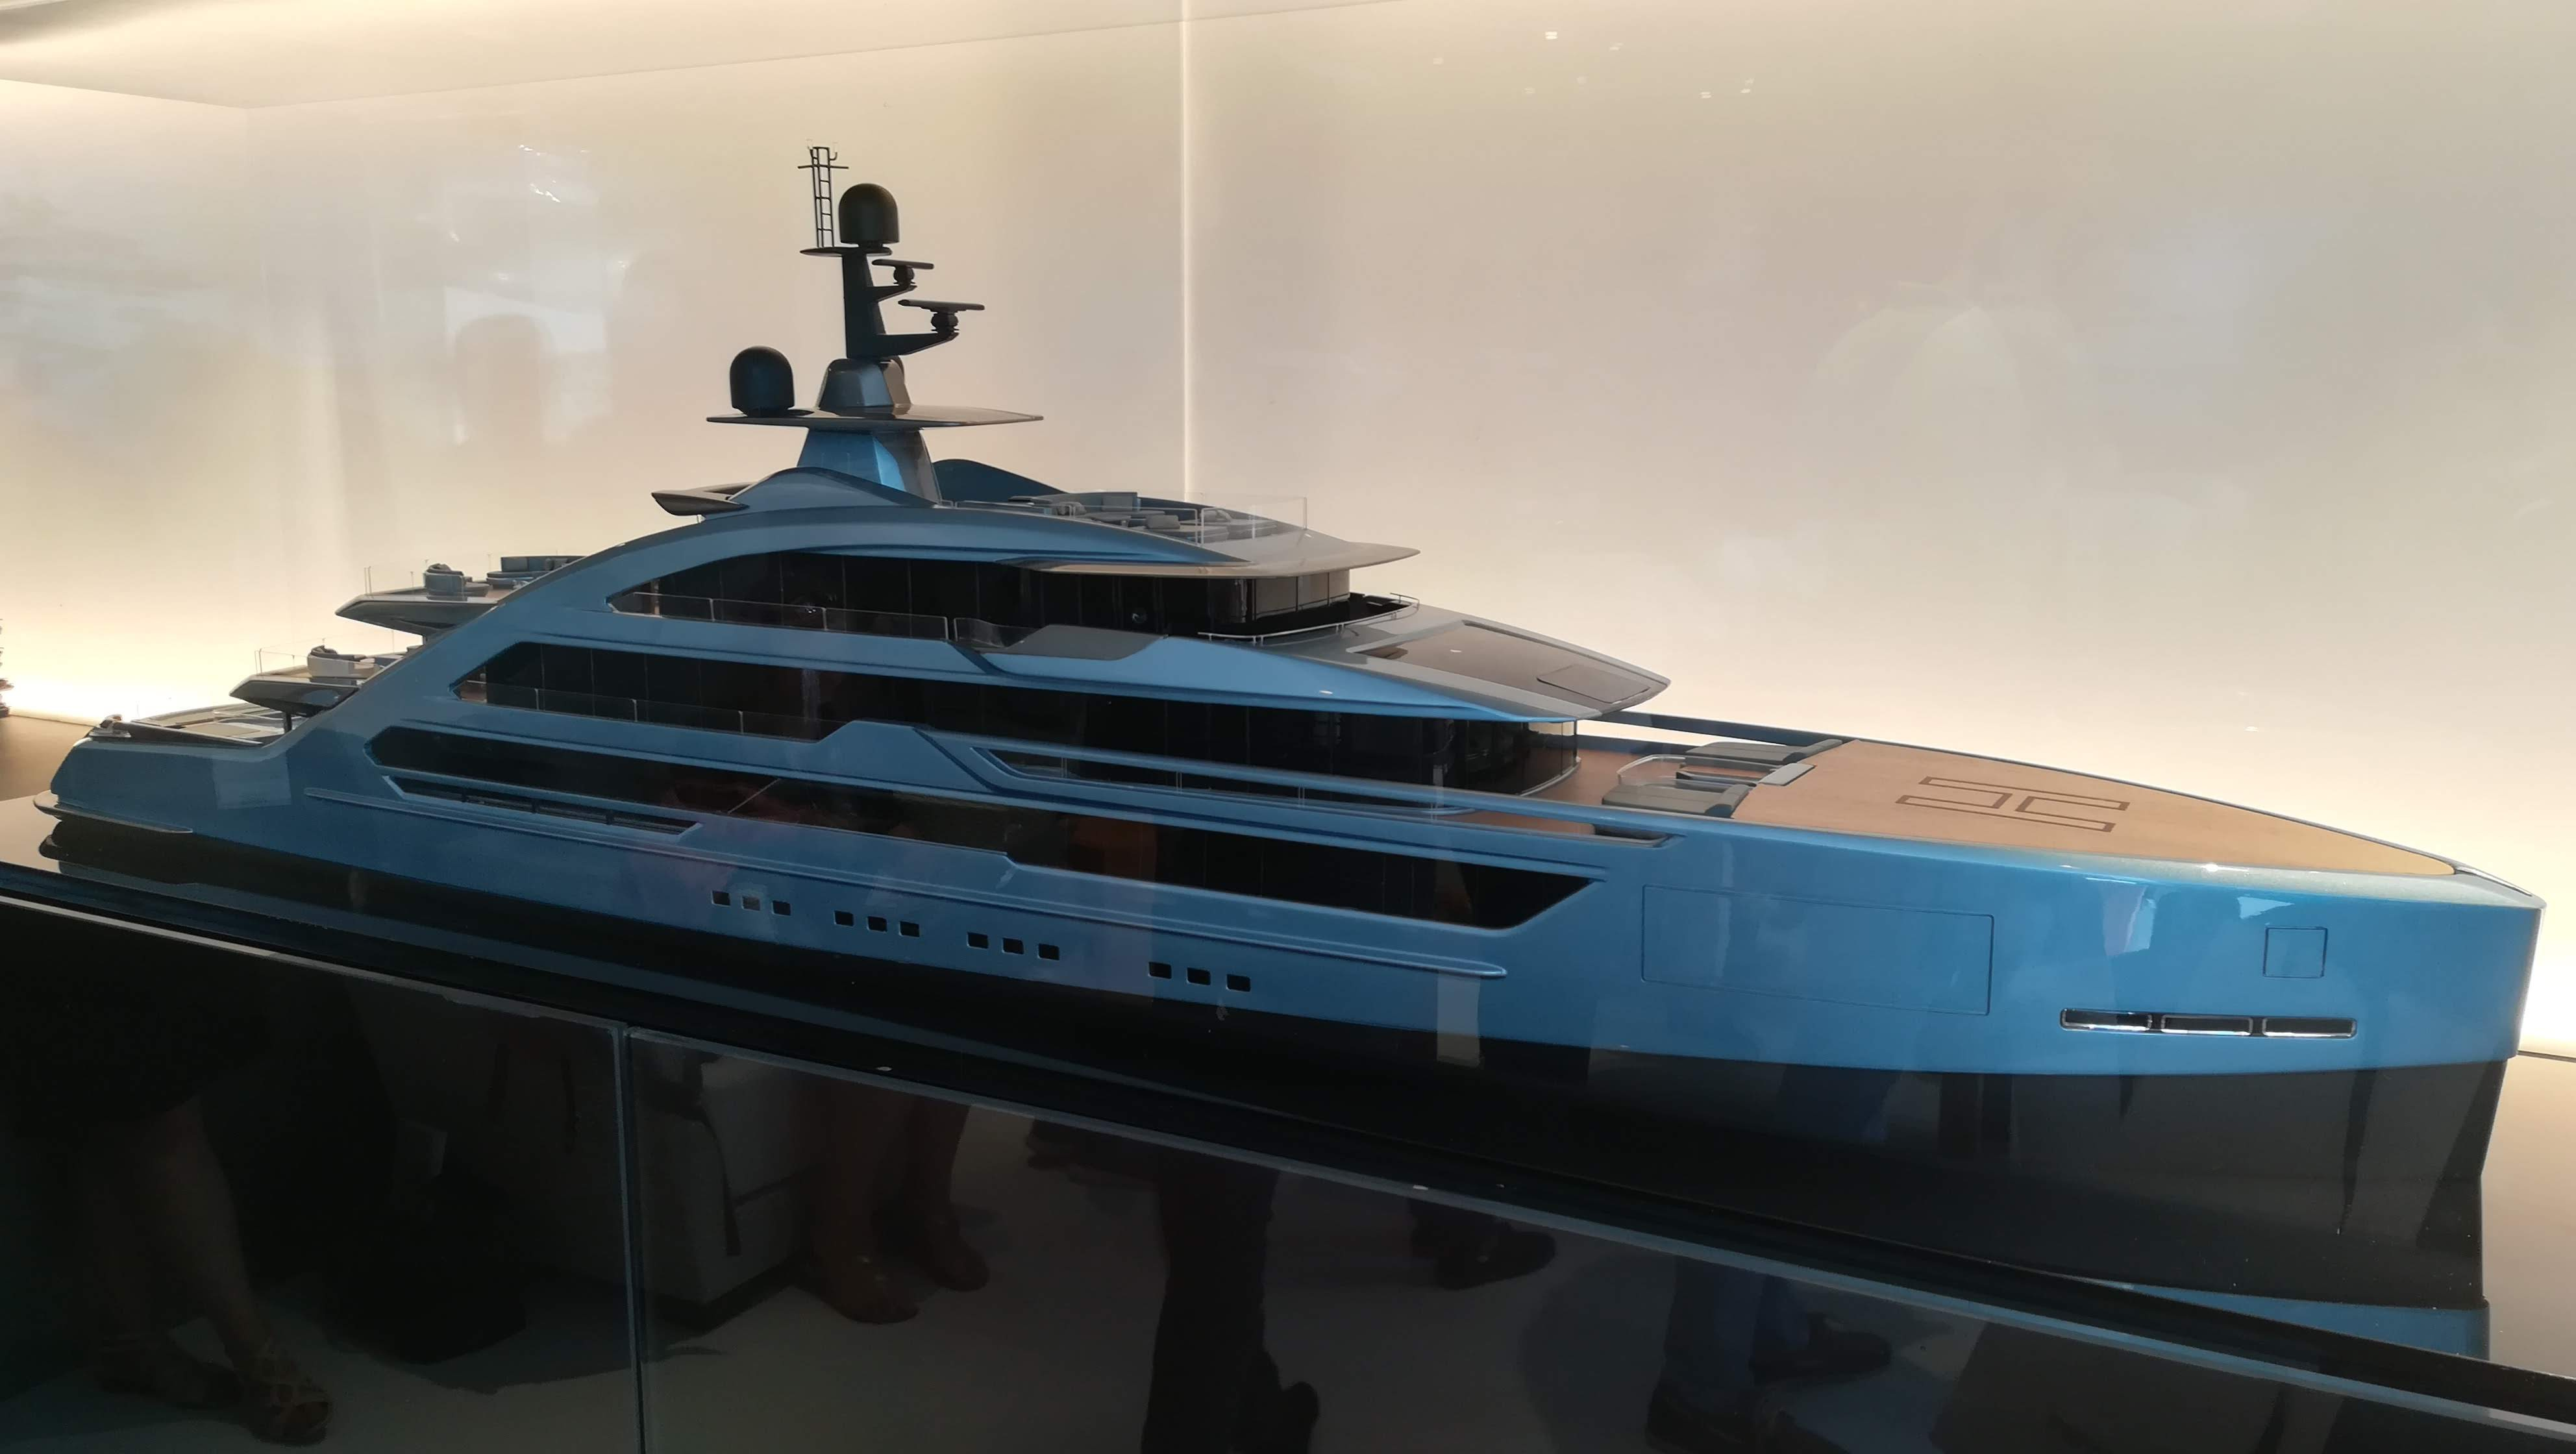 S702 NEXT 70 luxury yacht concept by Francesco Paszkowski and Tankoa Yachts - Photo © CharterWorld